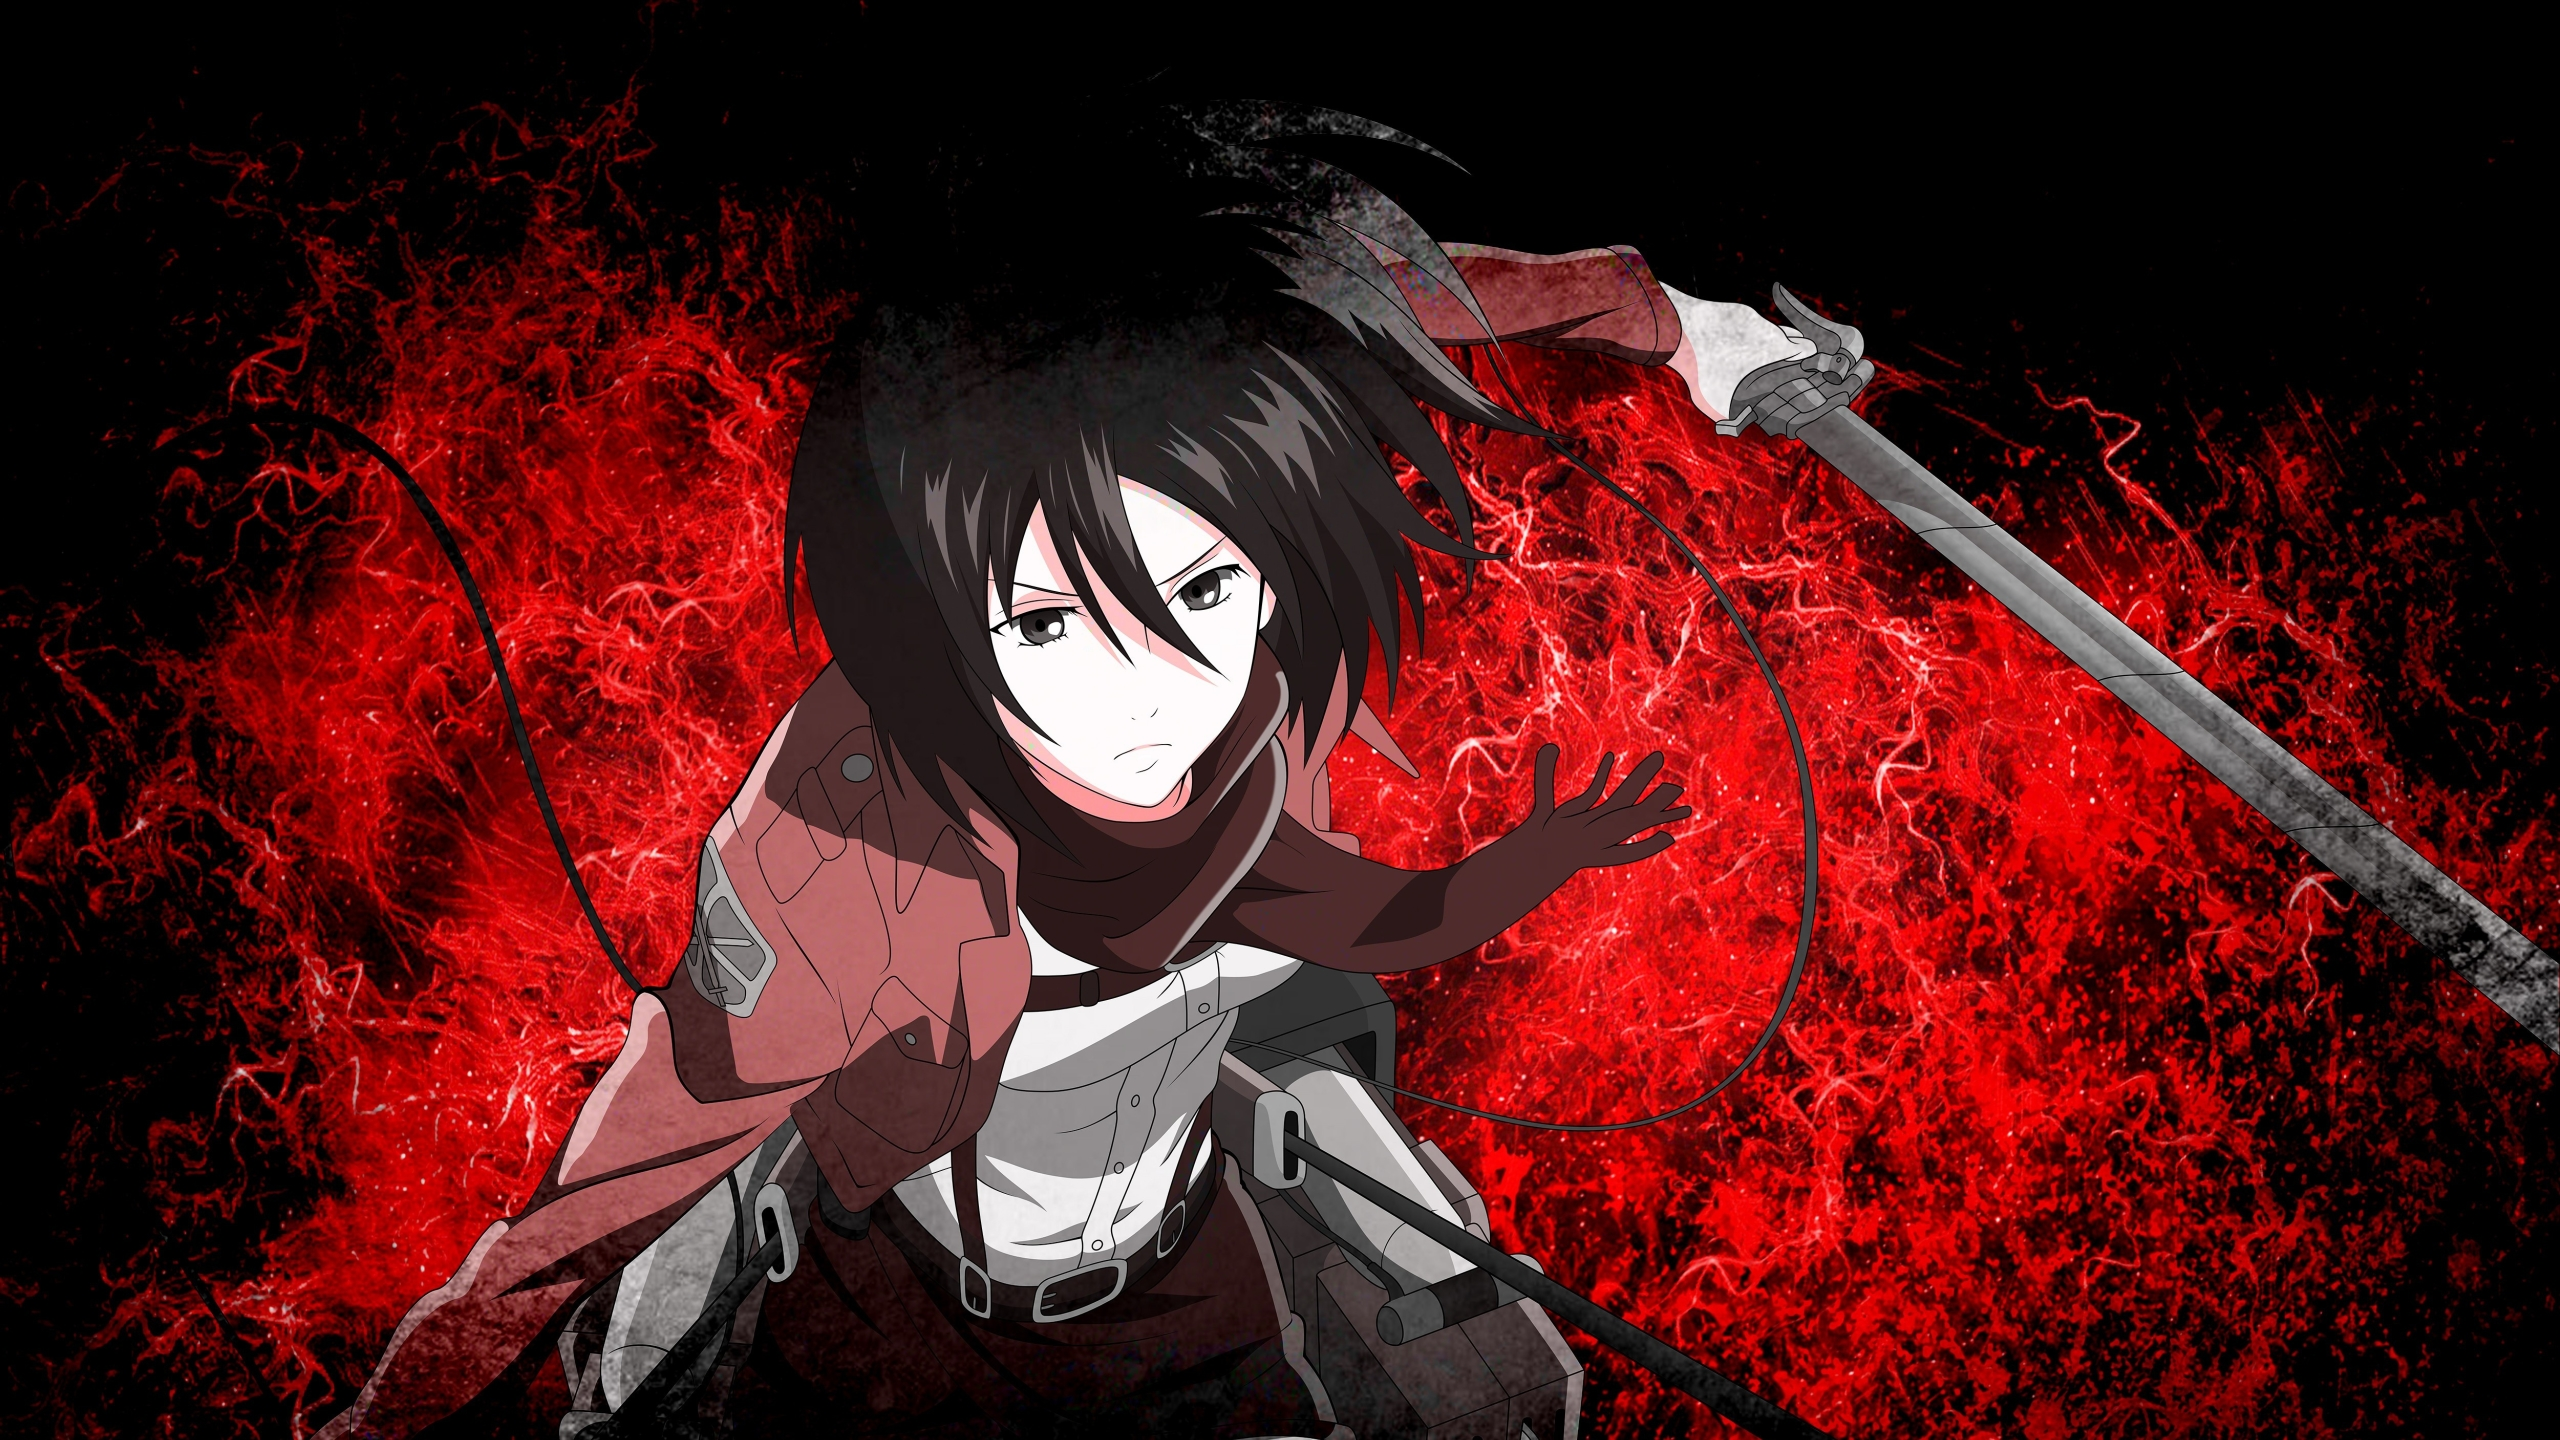 2560x1440 Mikasa Ackerman 5k 1440p Resolution Wallpaper Hd Anime 4k Wallpapers Images Photos And Background